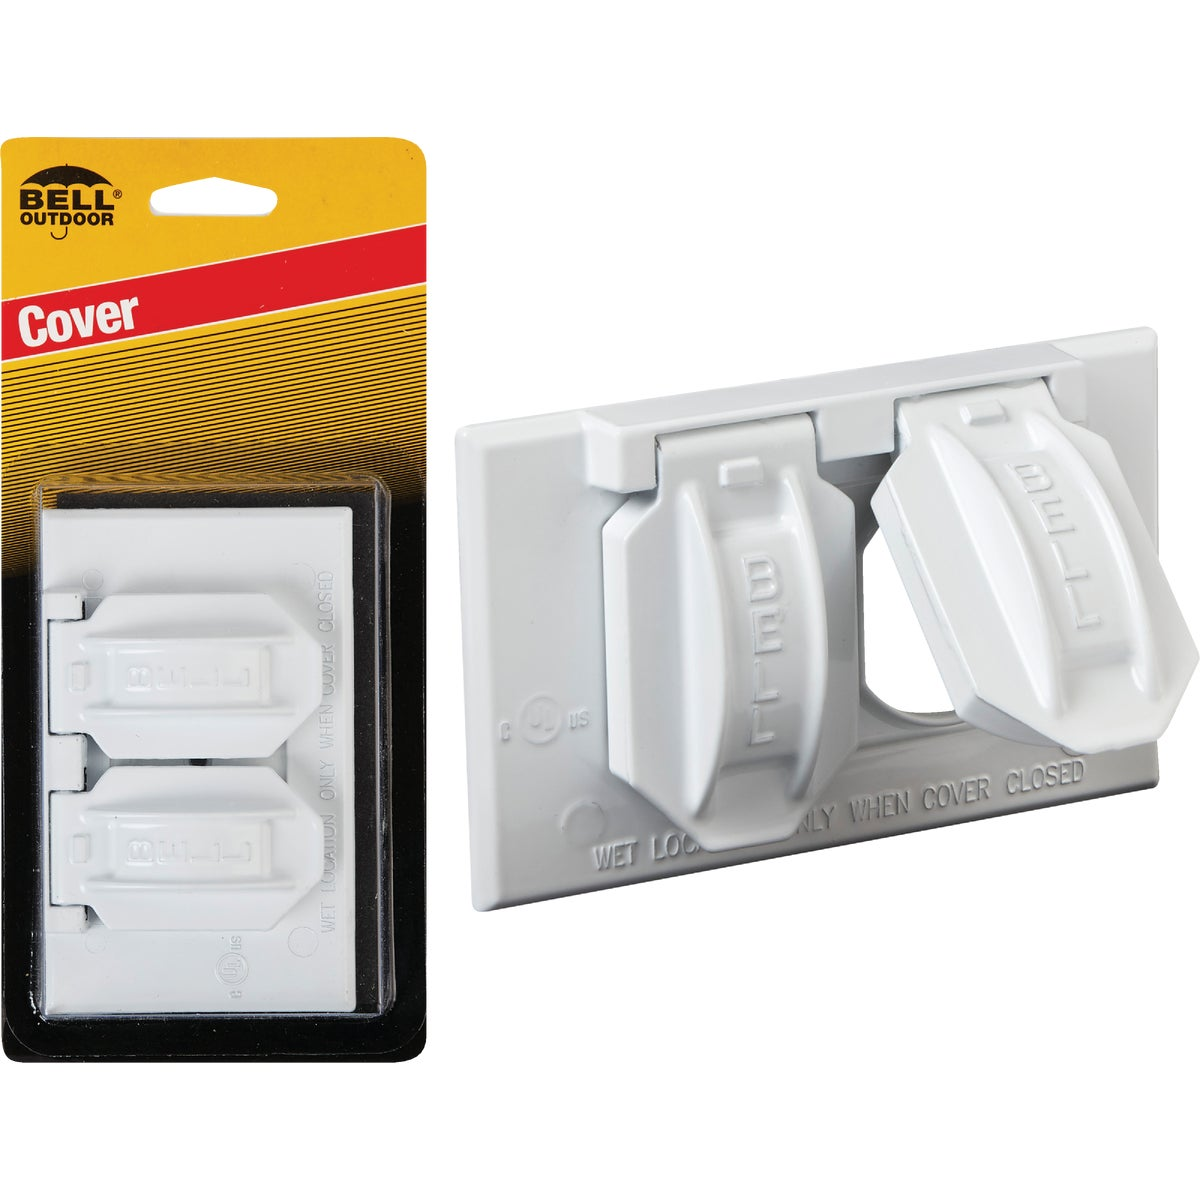 WHT OUTDOOR OUTLET COVER